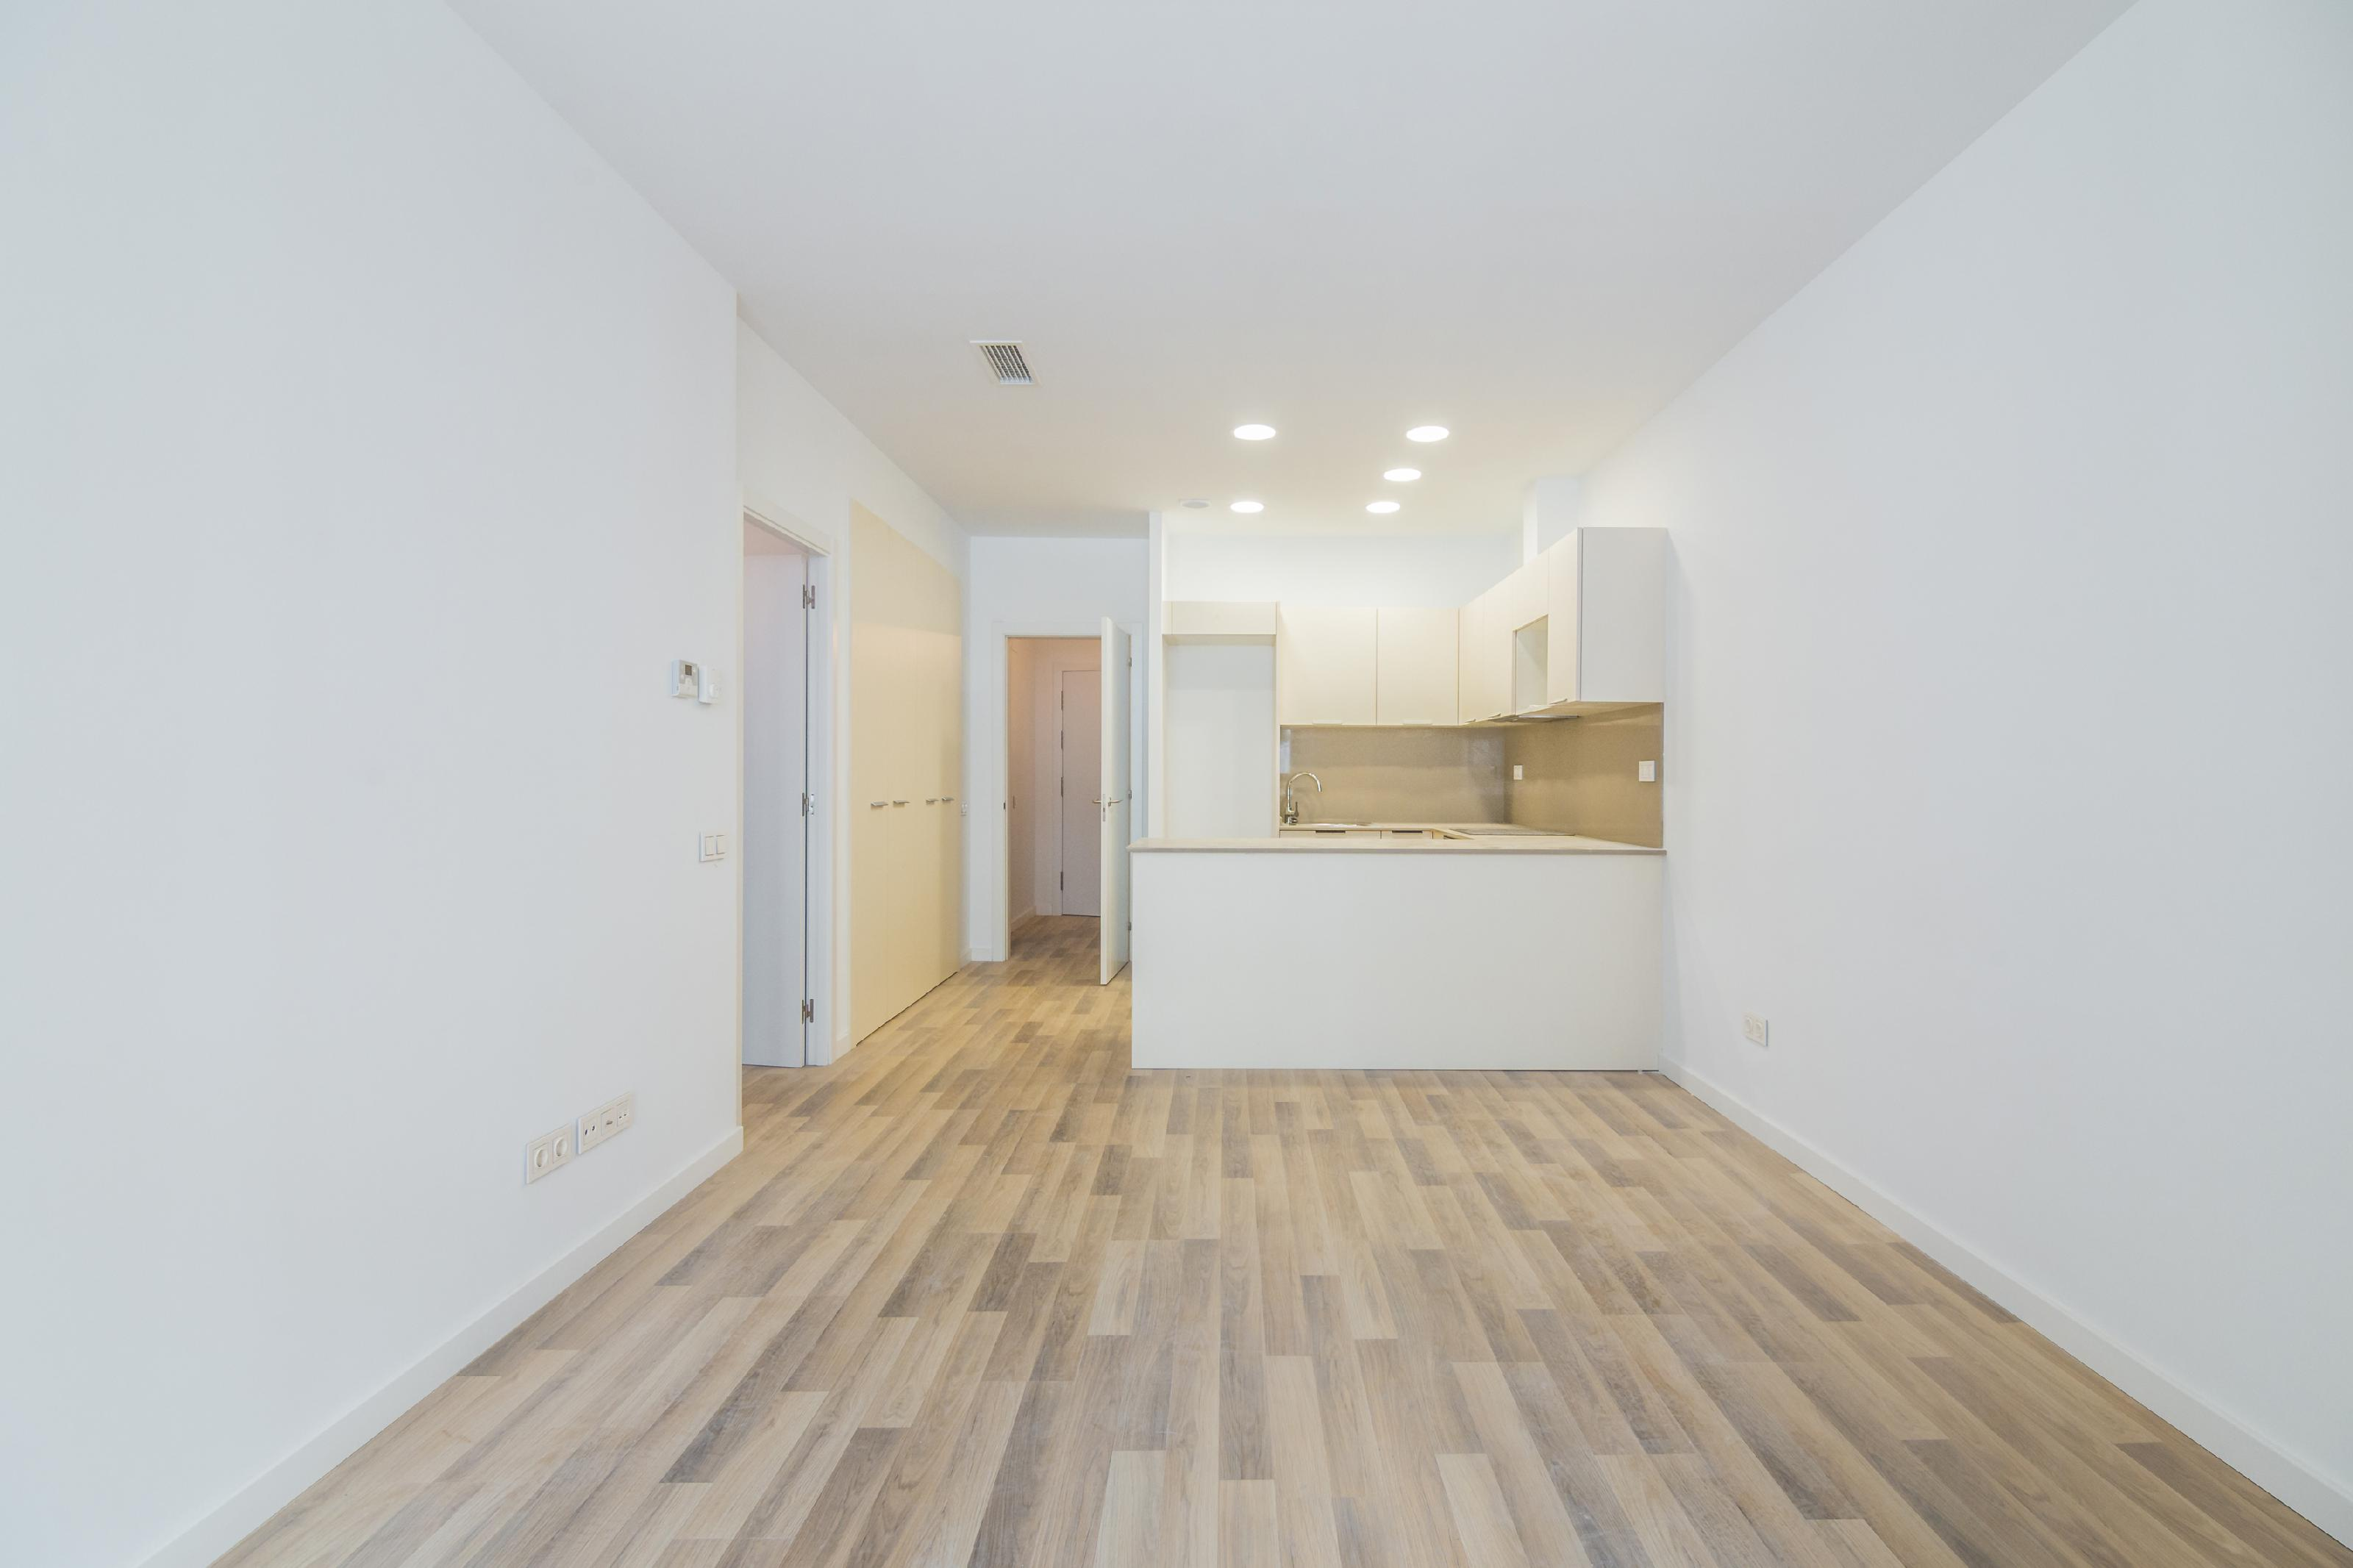 220650 Ground floor for sale in Sarrià-Sant Gervasi, Sant Gervasi-Galvany 18